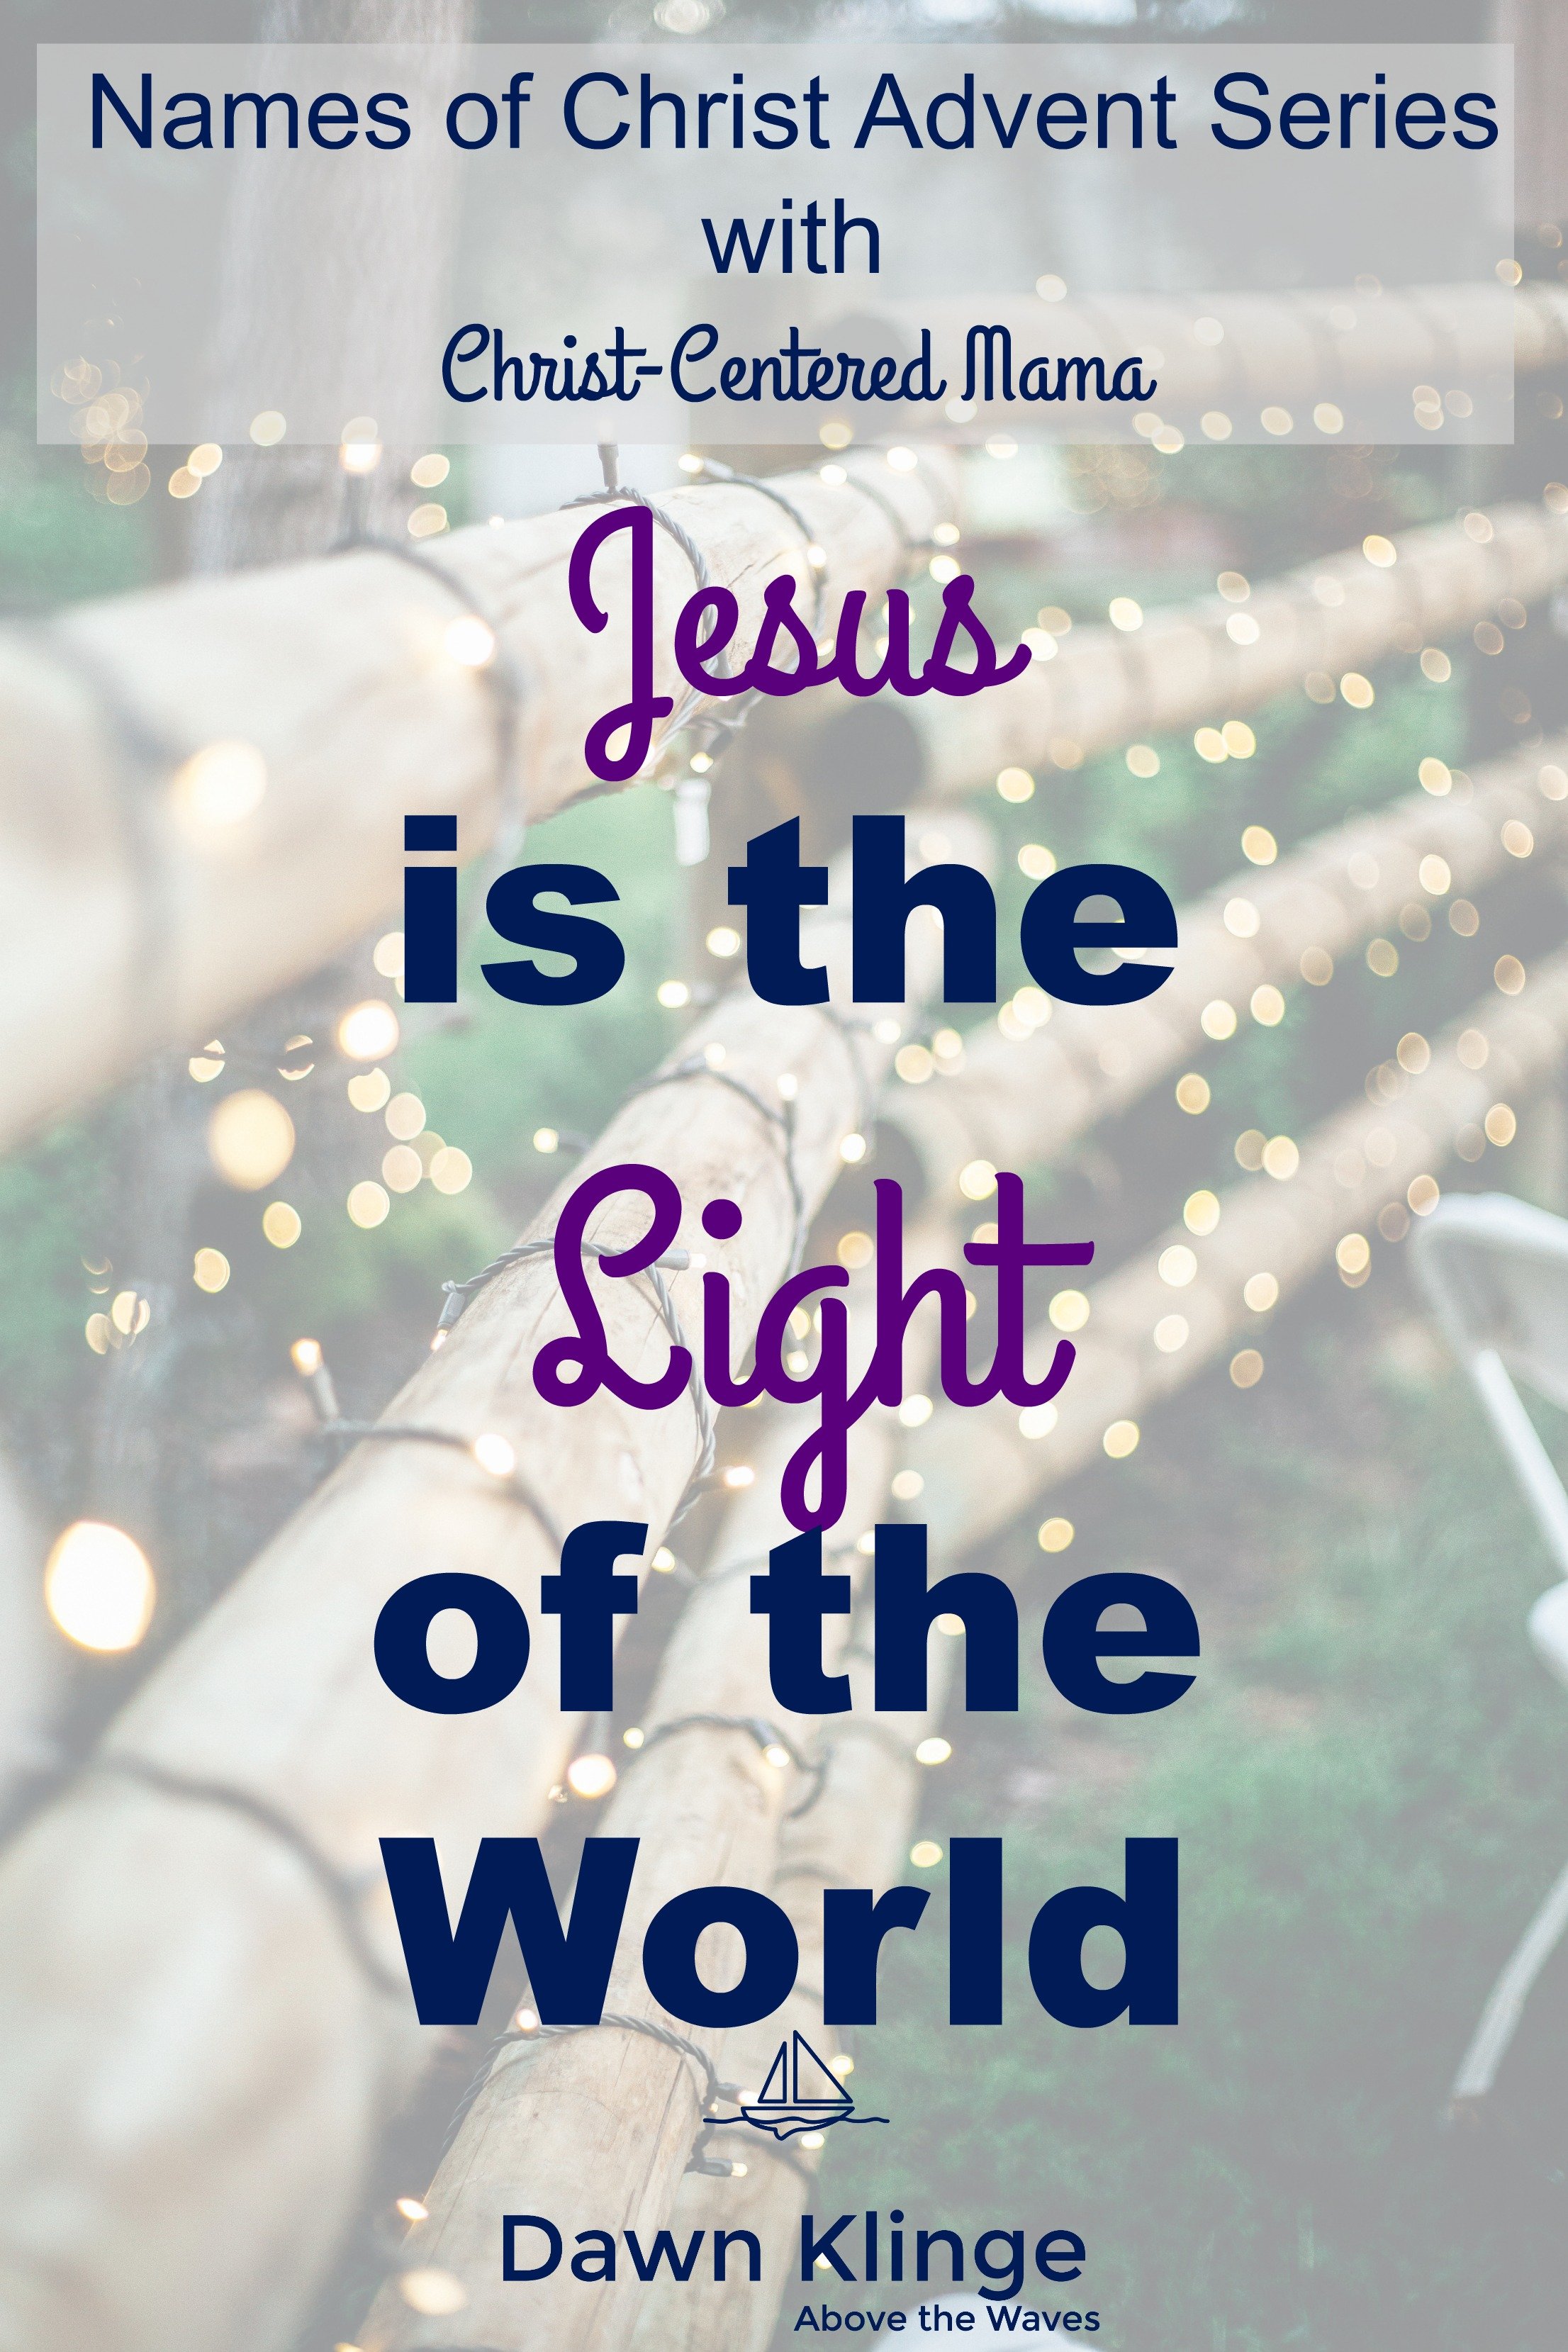 jesus light of the world | names of Christ Advent series | why Jesus is called the Light of the World | Christ Centered Mama | Above the Waves || #gospel #jesus